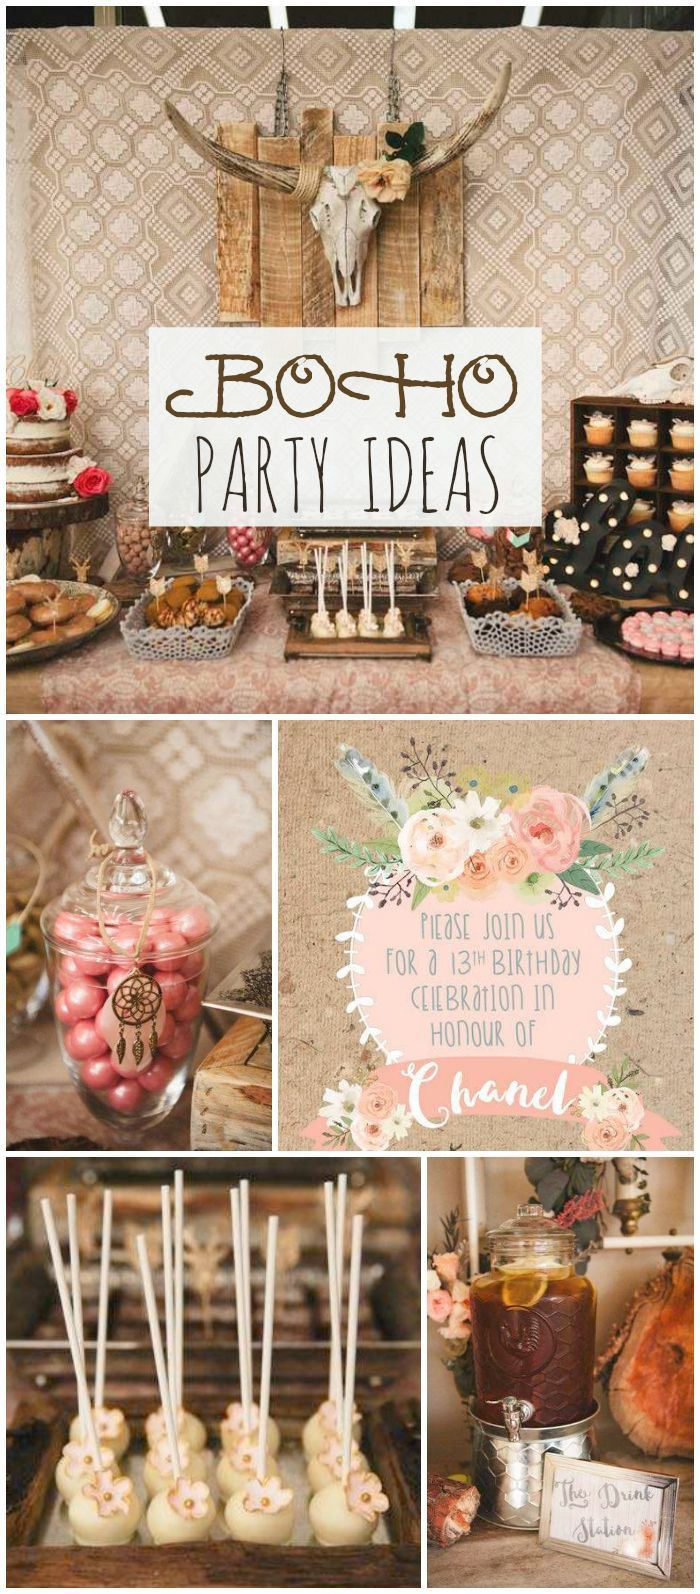 Smallcakes Kansas City This Party Has A Rustic Boho Chic Style See More Ideas At CatchMyParty